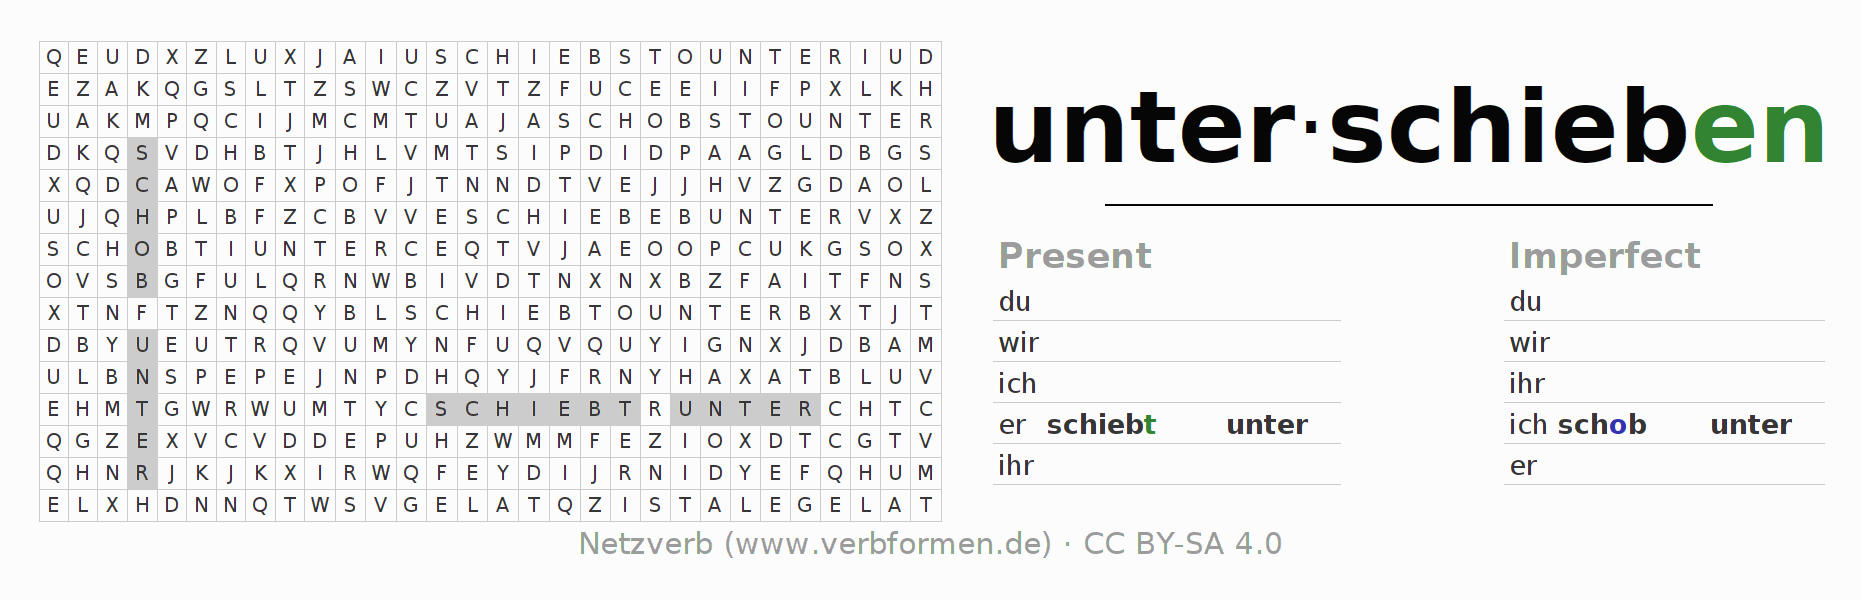 Word search puzzle for the conjugation of the verb unter-schieben